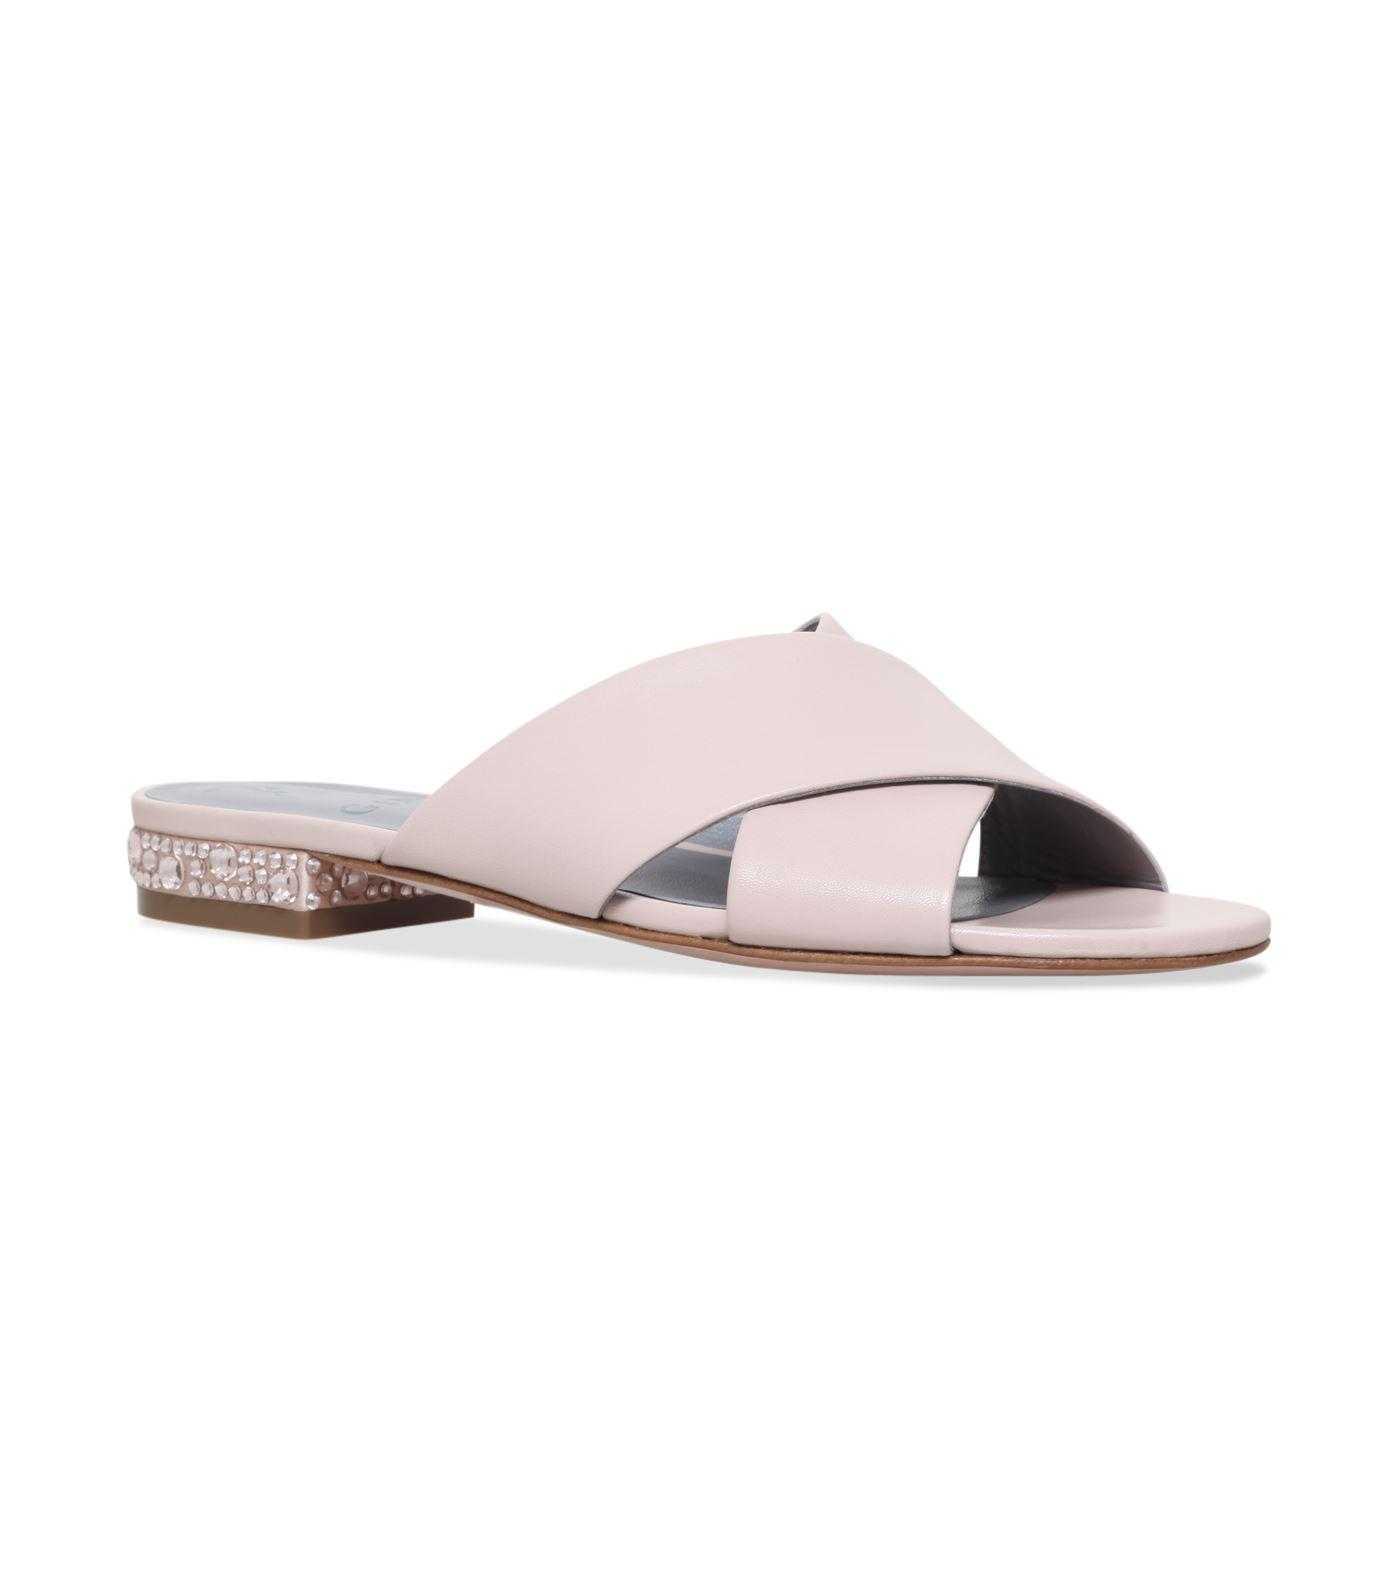 df6824bf1348d Gina Embellished Bourdin Mules 25 in Pink - Lyst